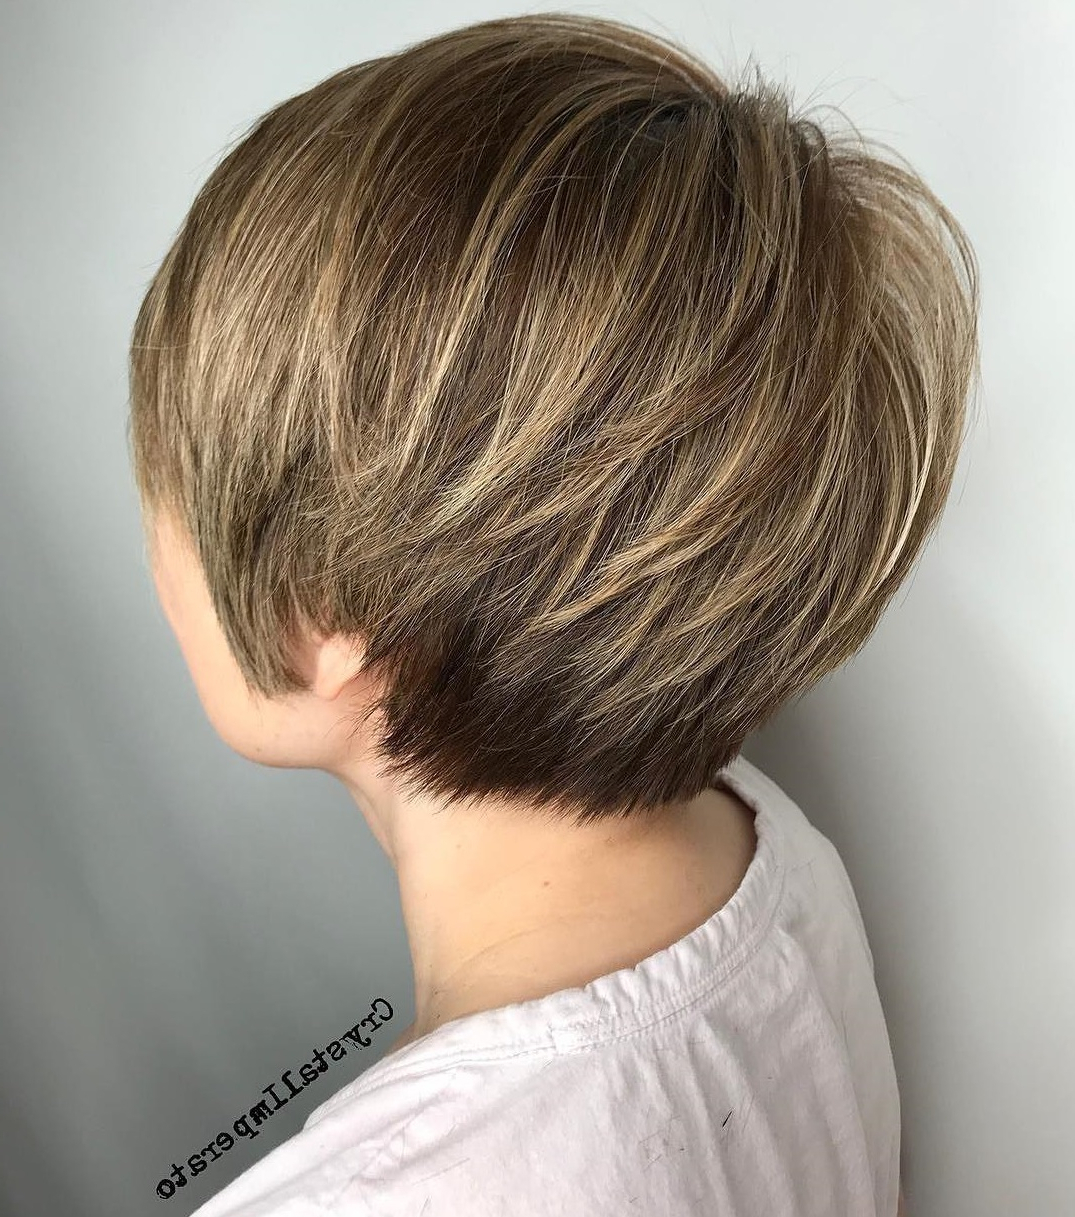 Newest Bright And Beautiful Pixie Bob Hairstyles Regarding 50 Hottest Pixie Cut Hairstyles In (View 14 of 20)